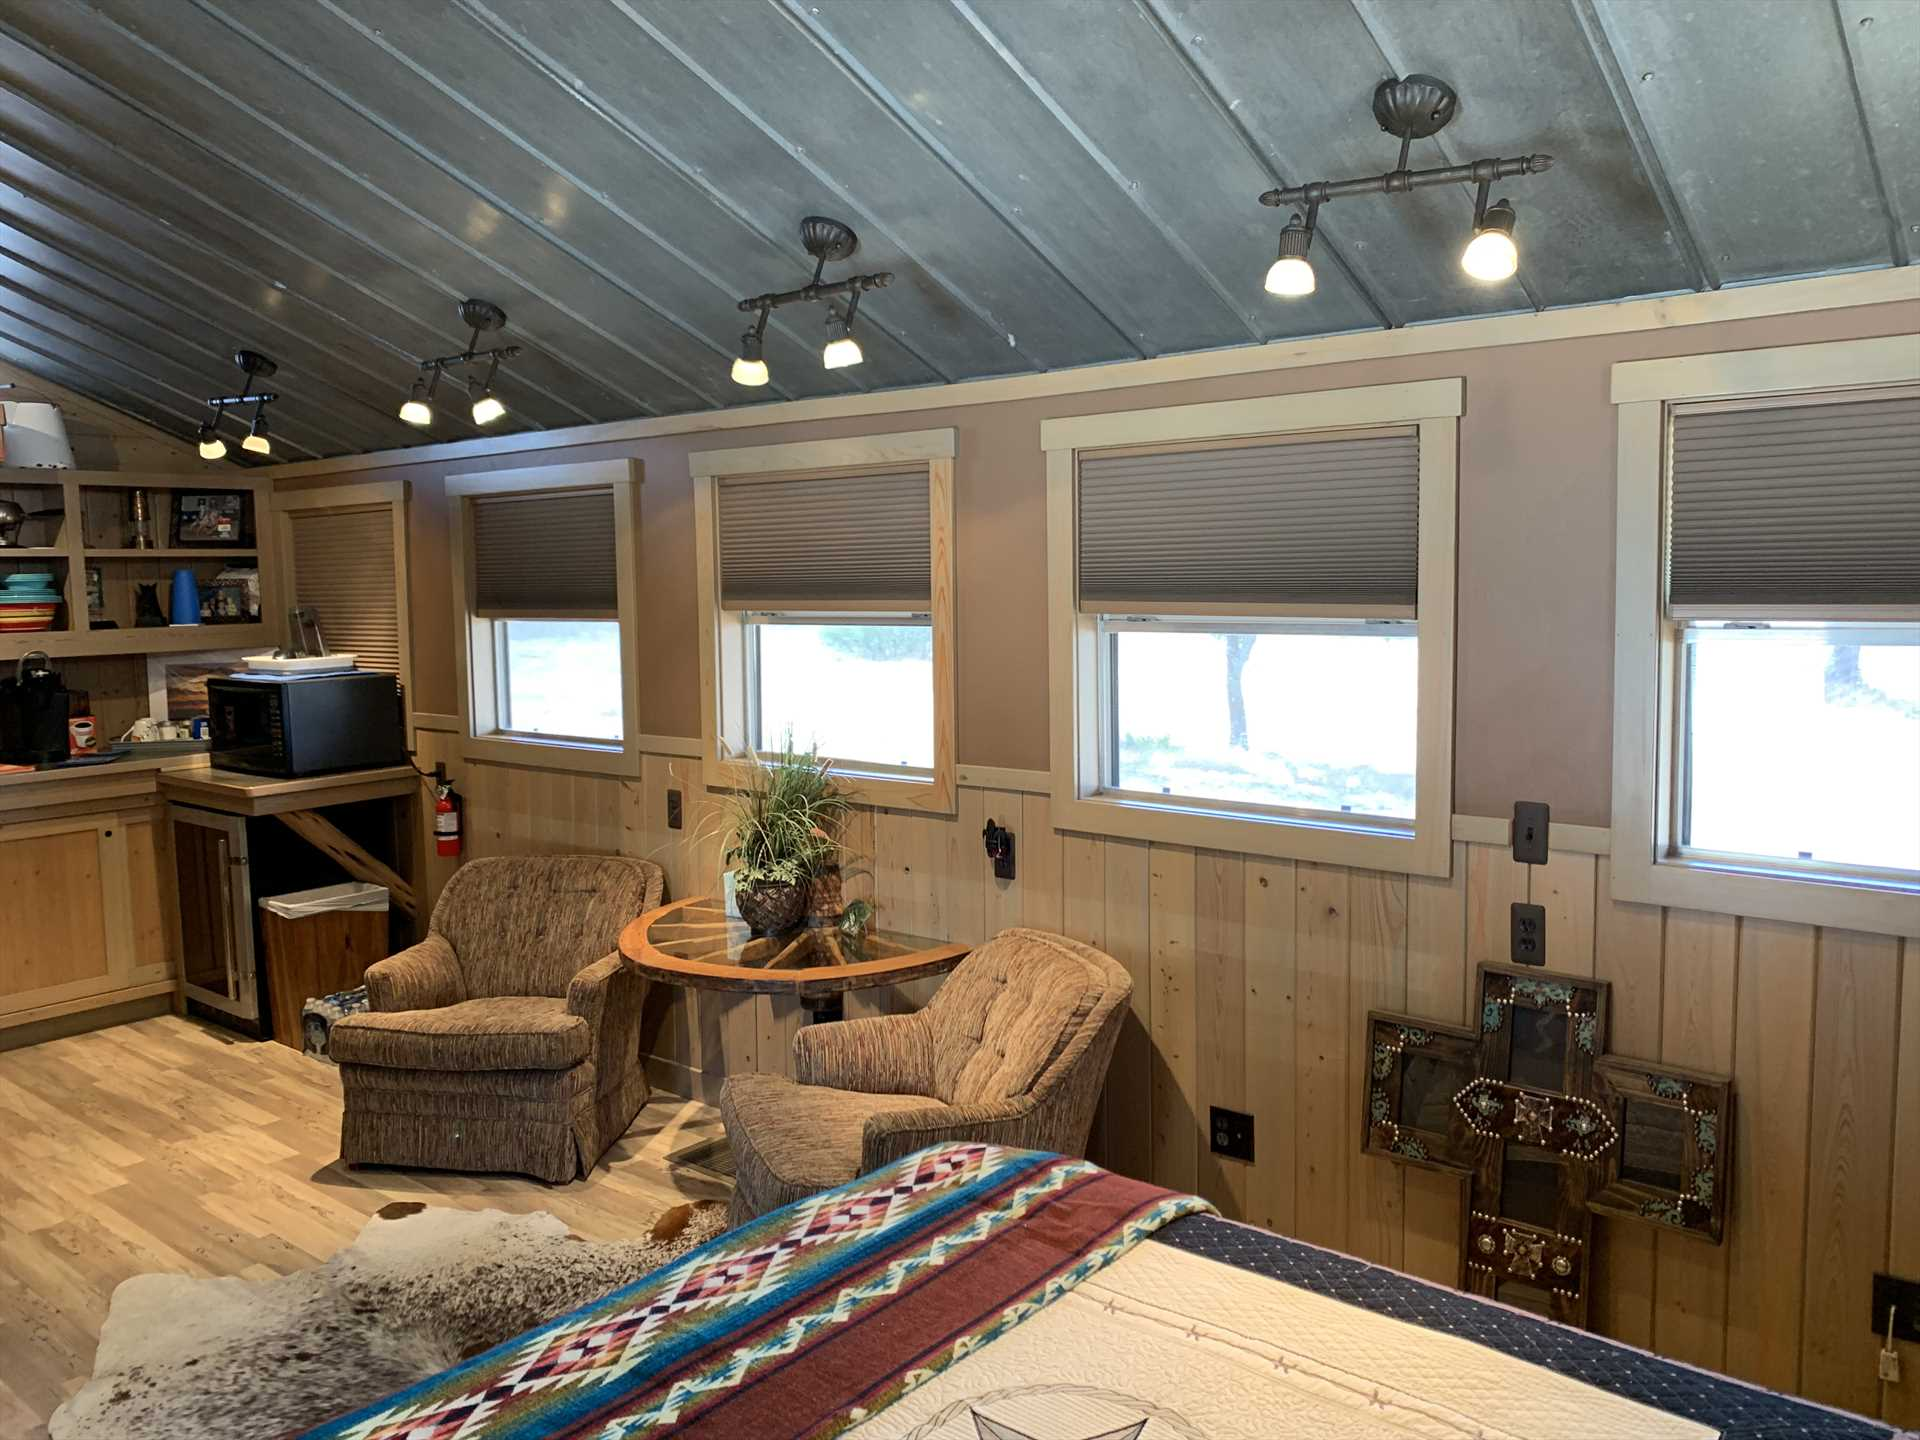 Central air and heat keep every inch of the stylish Star Cabin comfy, no matter what time of year you visit. You'll also have satellite and cable TV and shared Wifi for your tech needs.